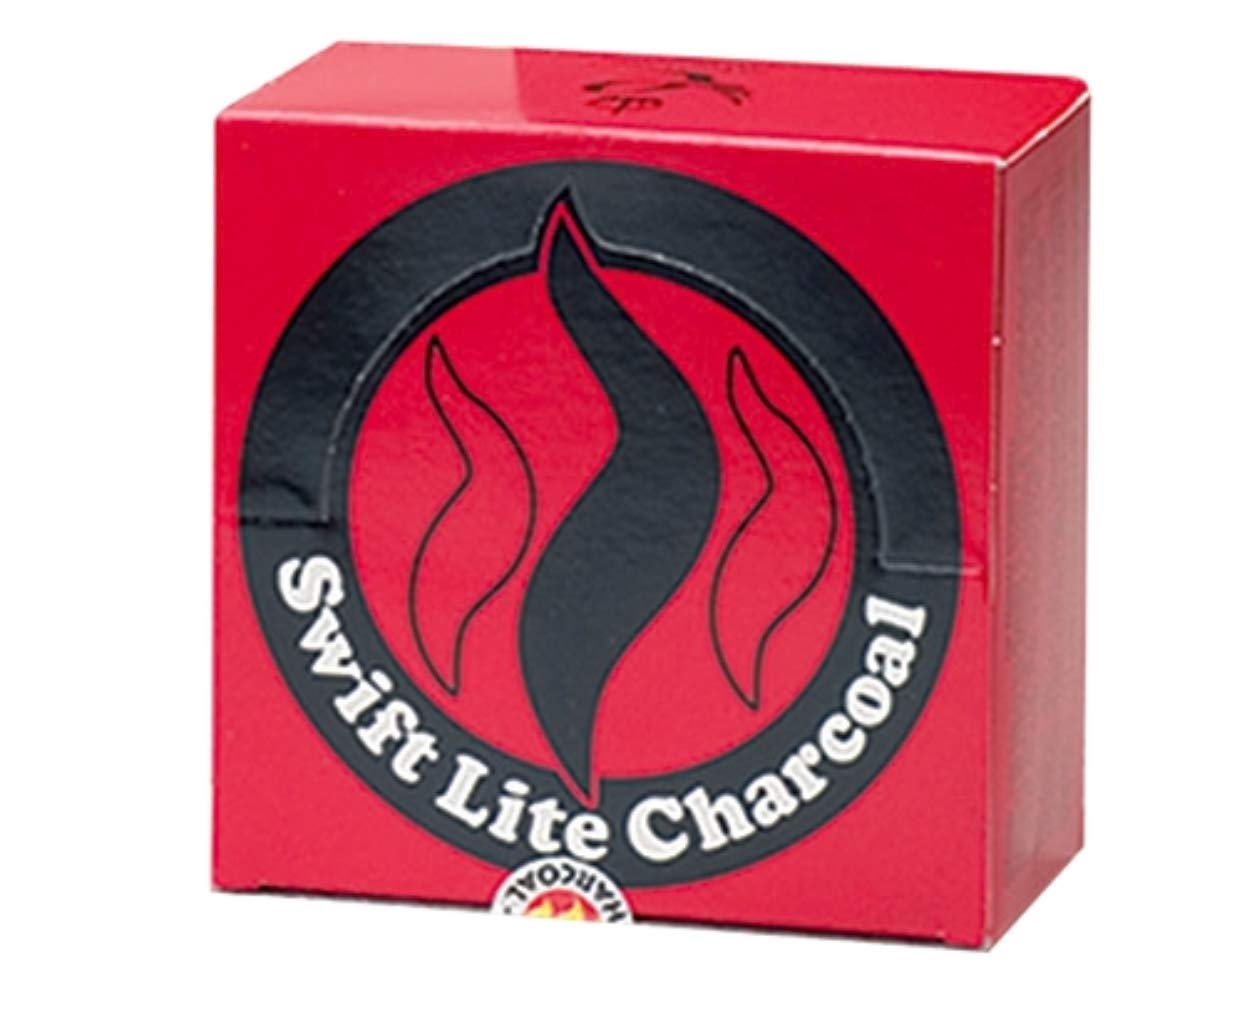 Swift Lite Pack of 100 x 40 mm charcoal Tablets (for incense/Shisha burning) by Swift Lite